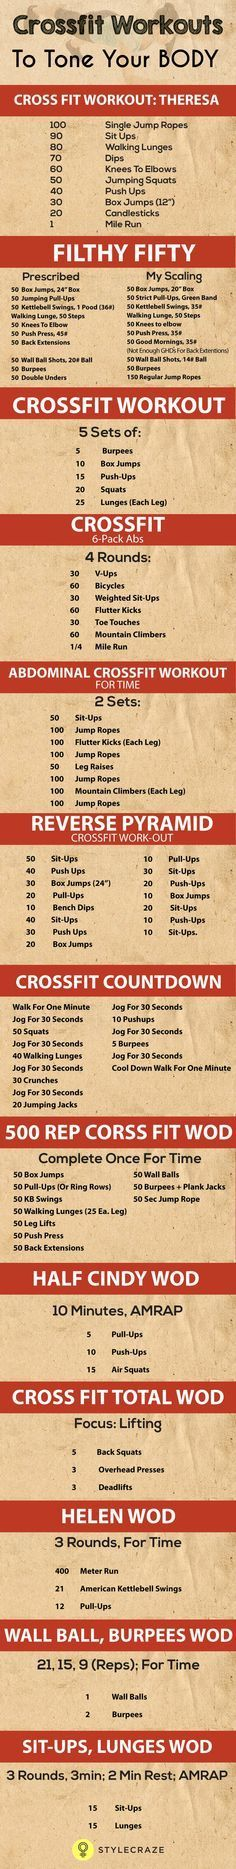 Health And Fitness: 20 Effective Crossfit Workouts To Tone Your Body